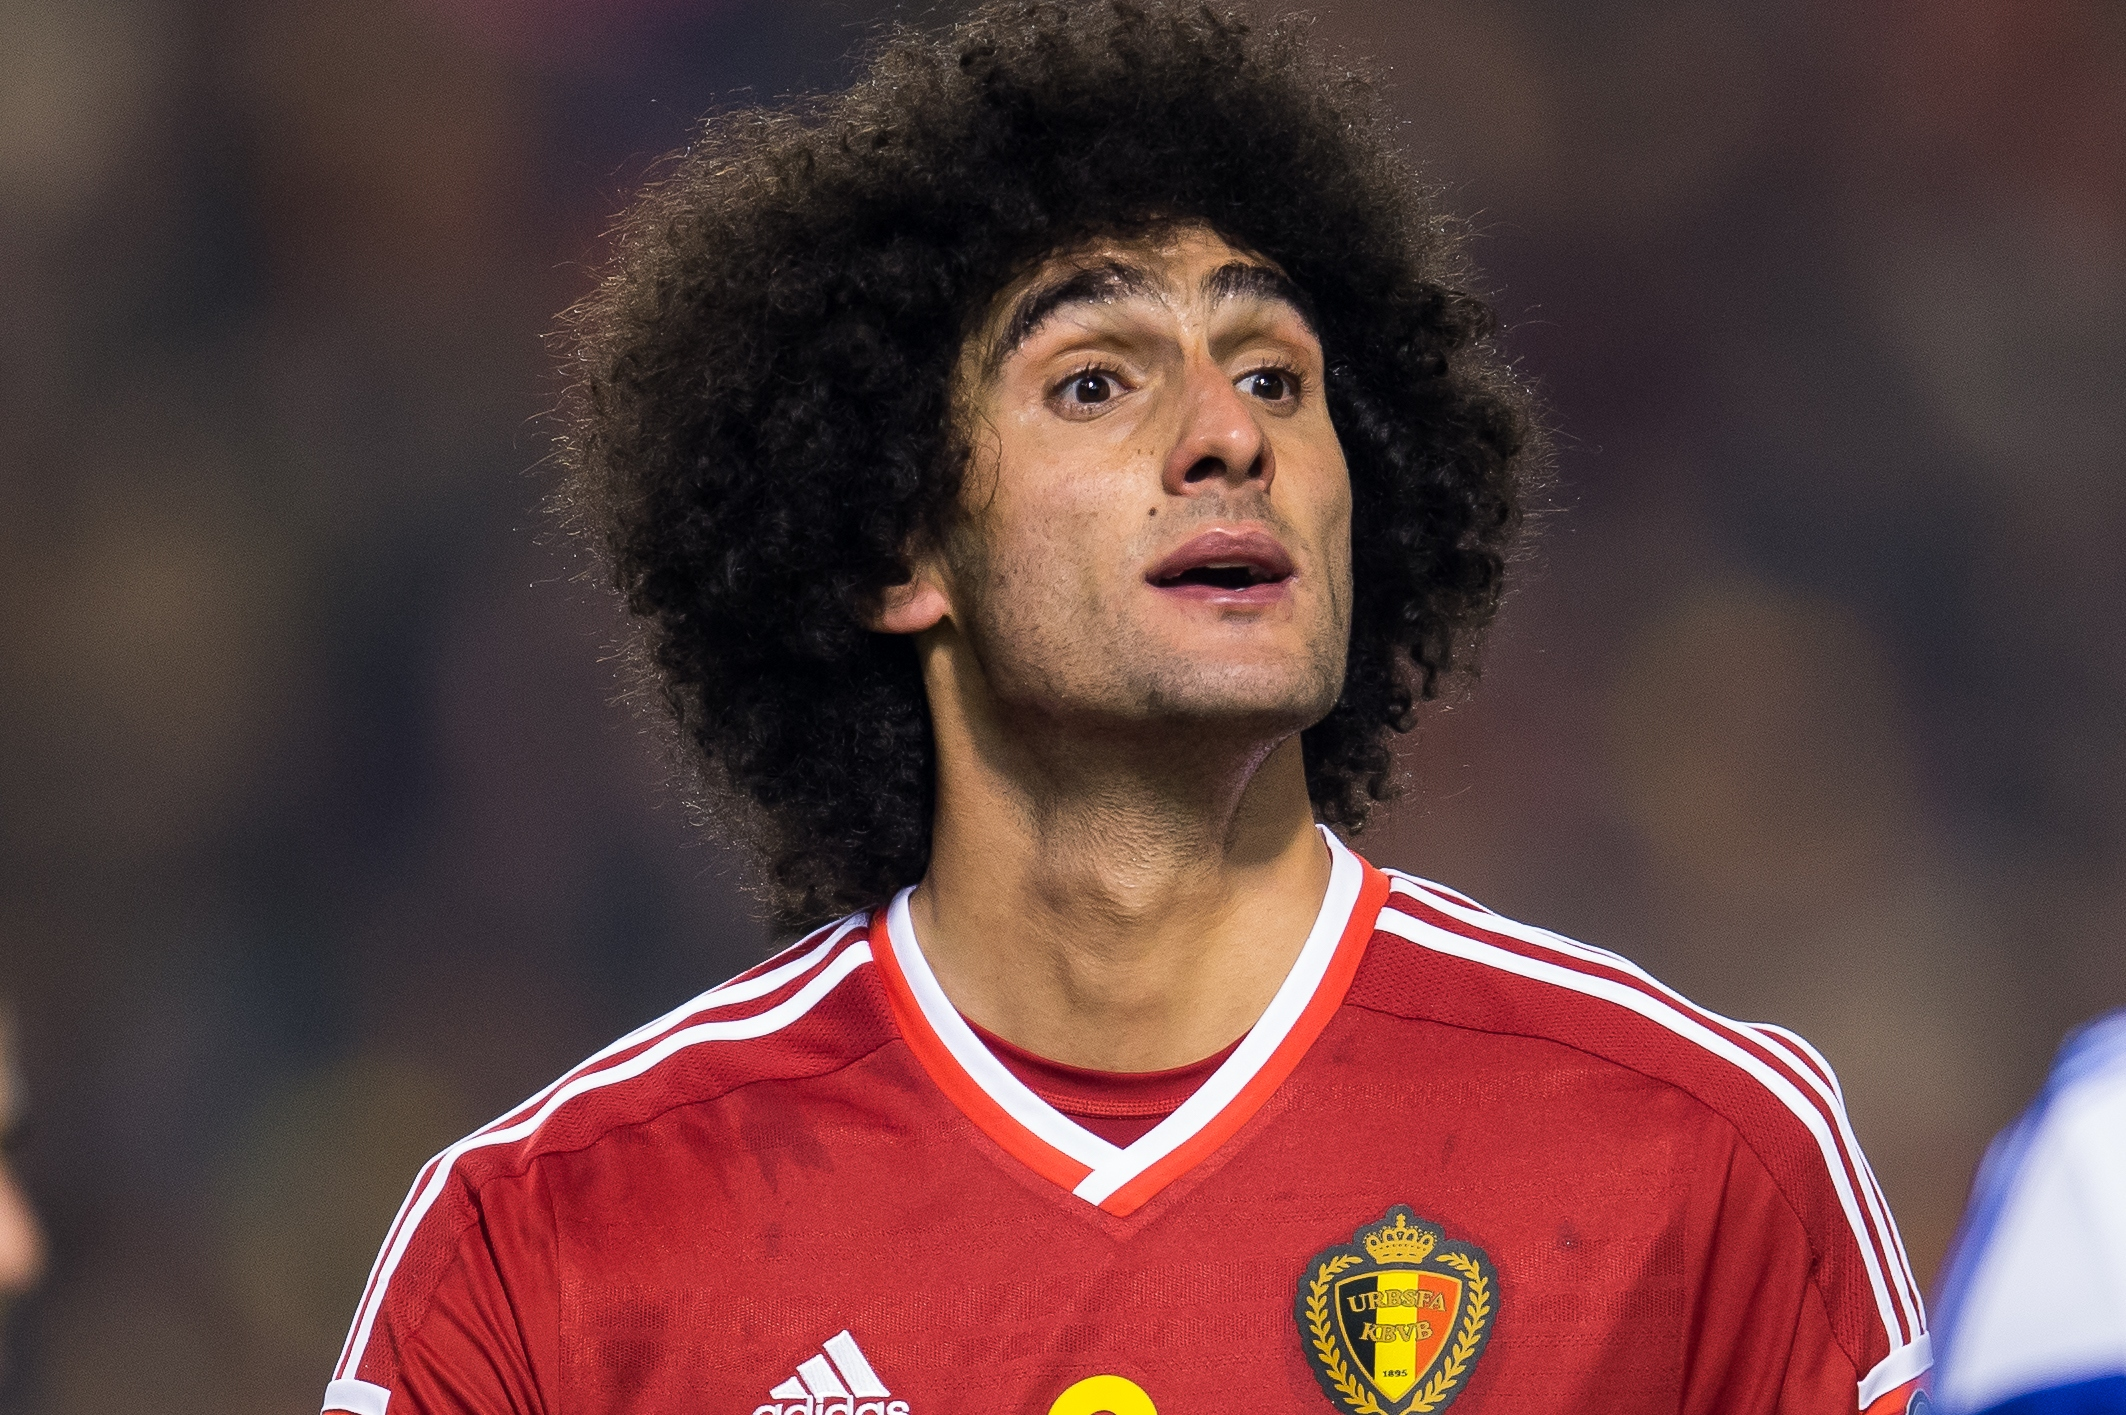 Marouane Fellaini of Belgium during the UEFA EURO 2016 group B qualifying match between Belgium and Israel on October 13, 2015 at the Koning Boudewijn stadium in Brussels, Belgium.(Photo by VI Images via Getty Images)